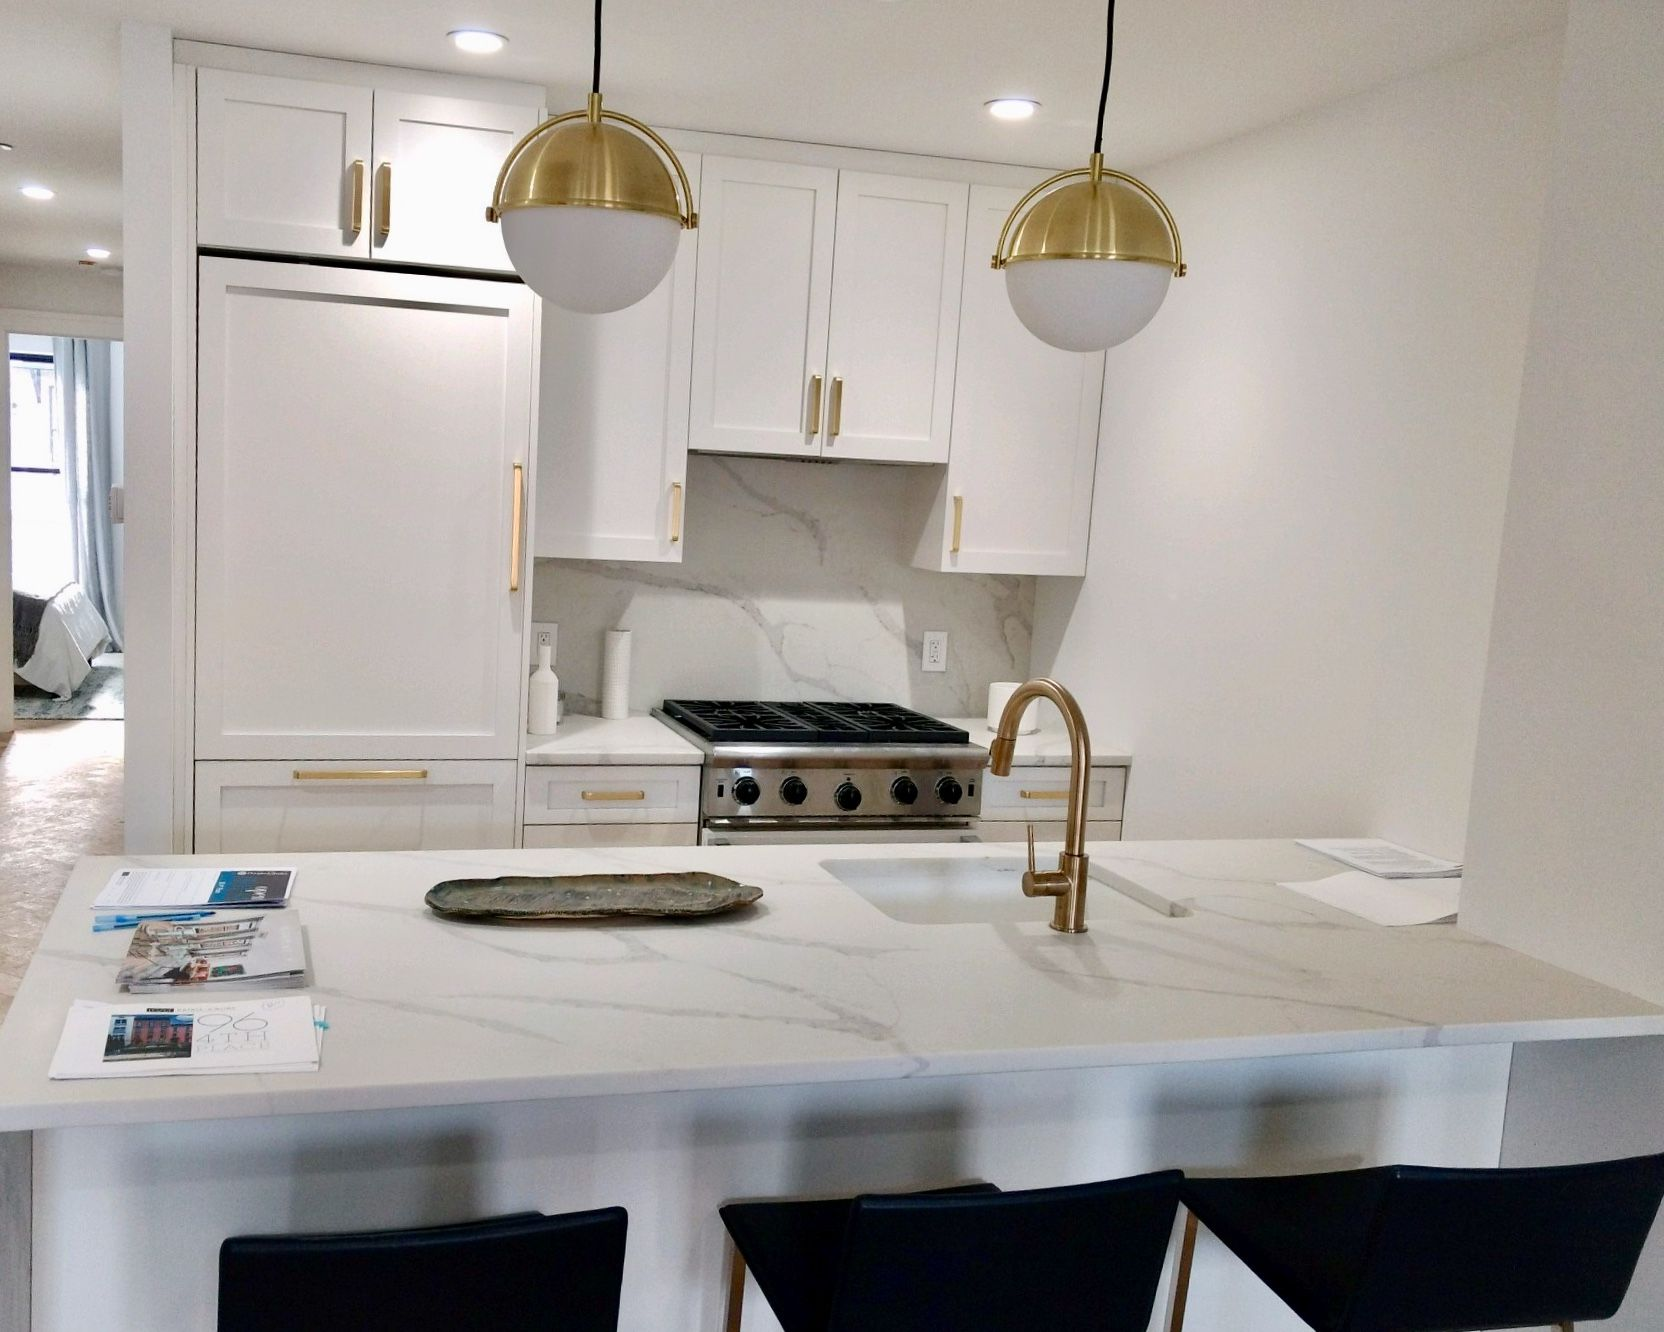 What S Trending Now In Kitchens Is Combining White Cabinetry With Gold Hardware The Results Gorgeous Small White Kitchens White Kitchen Design Kitchen Design